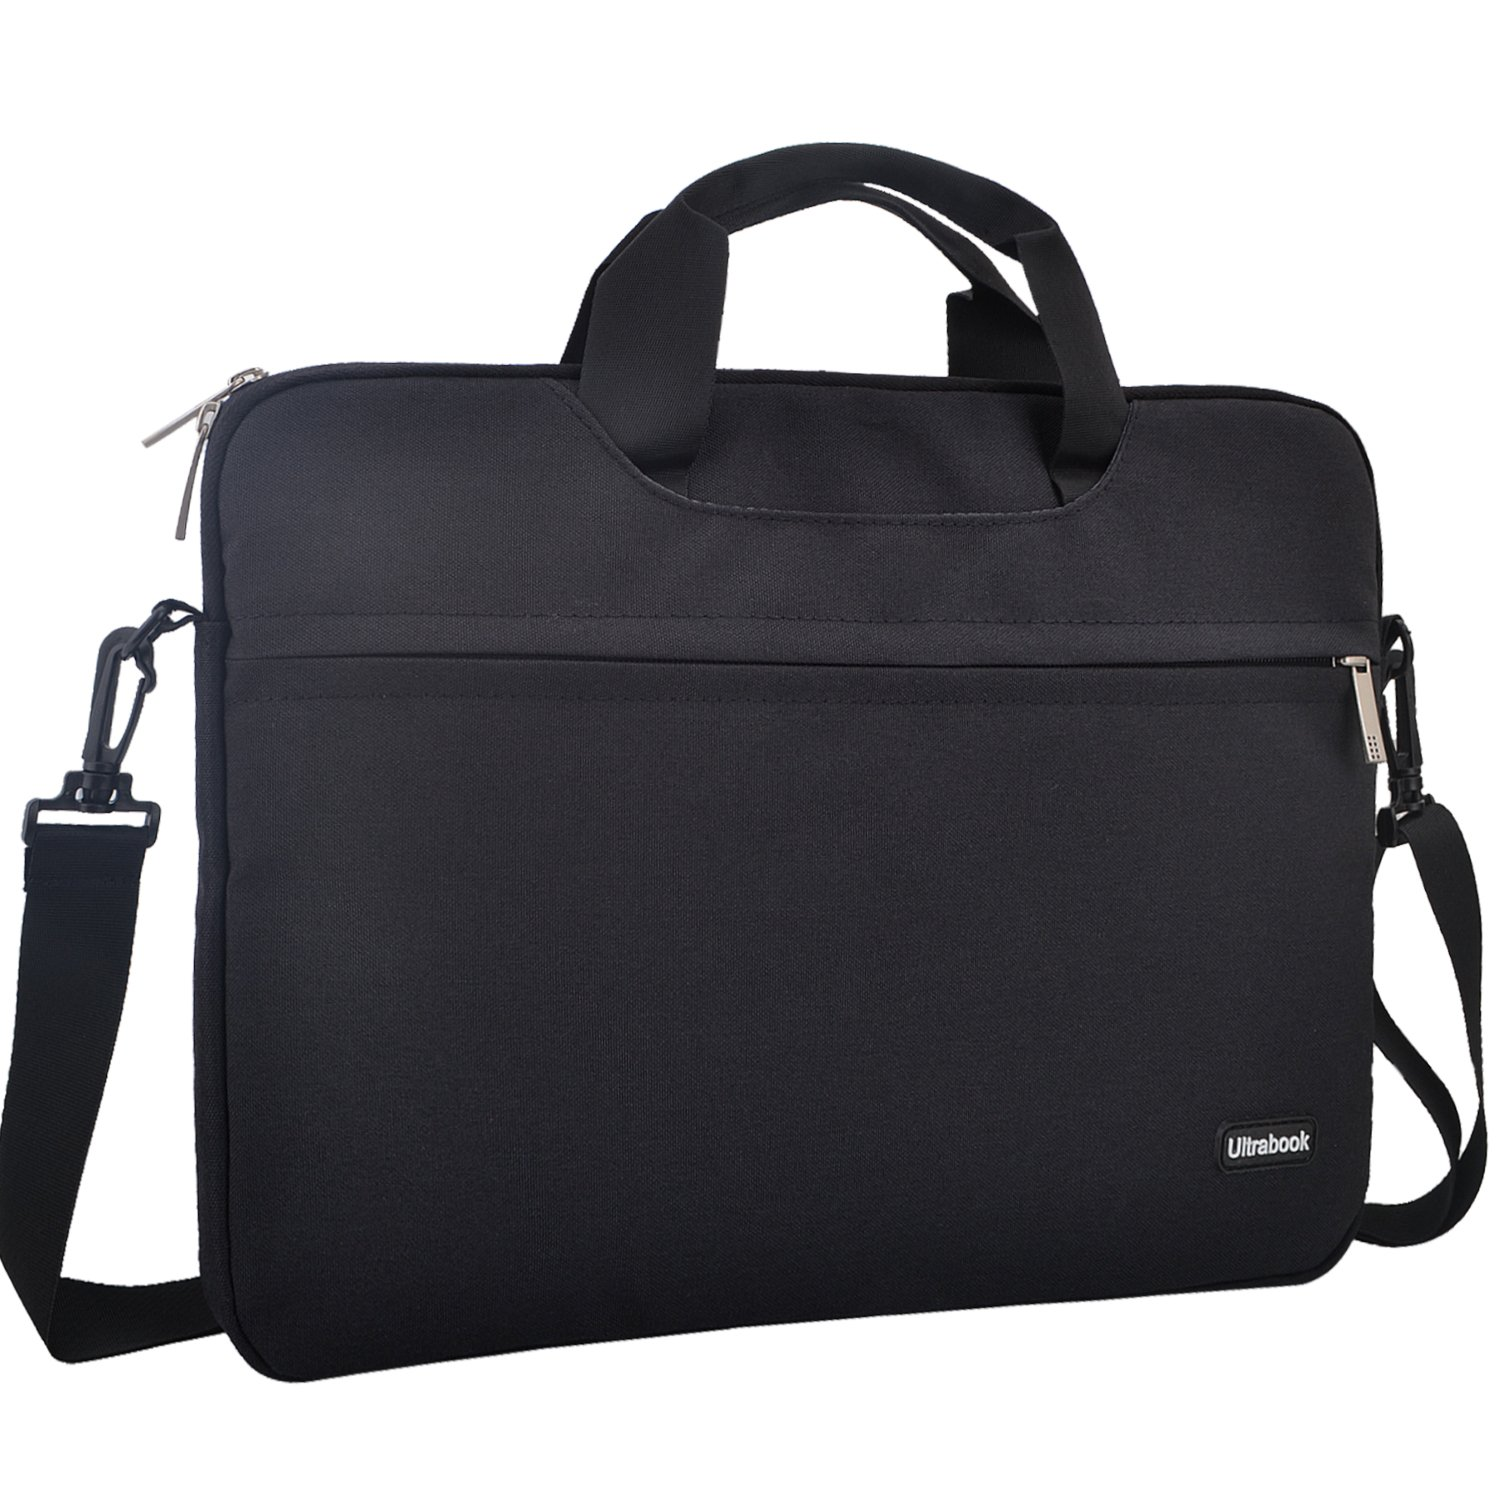 YOUPECK Ultra Thin 13.3 inch Laptop Shoulder Bag for MacBook Air 13 / IPad Pro 12.9/ Surface Book/Acer Lenovo ASUS 13 inch Tablet Sleeve Carrying Case Protective Bag, Black